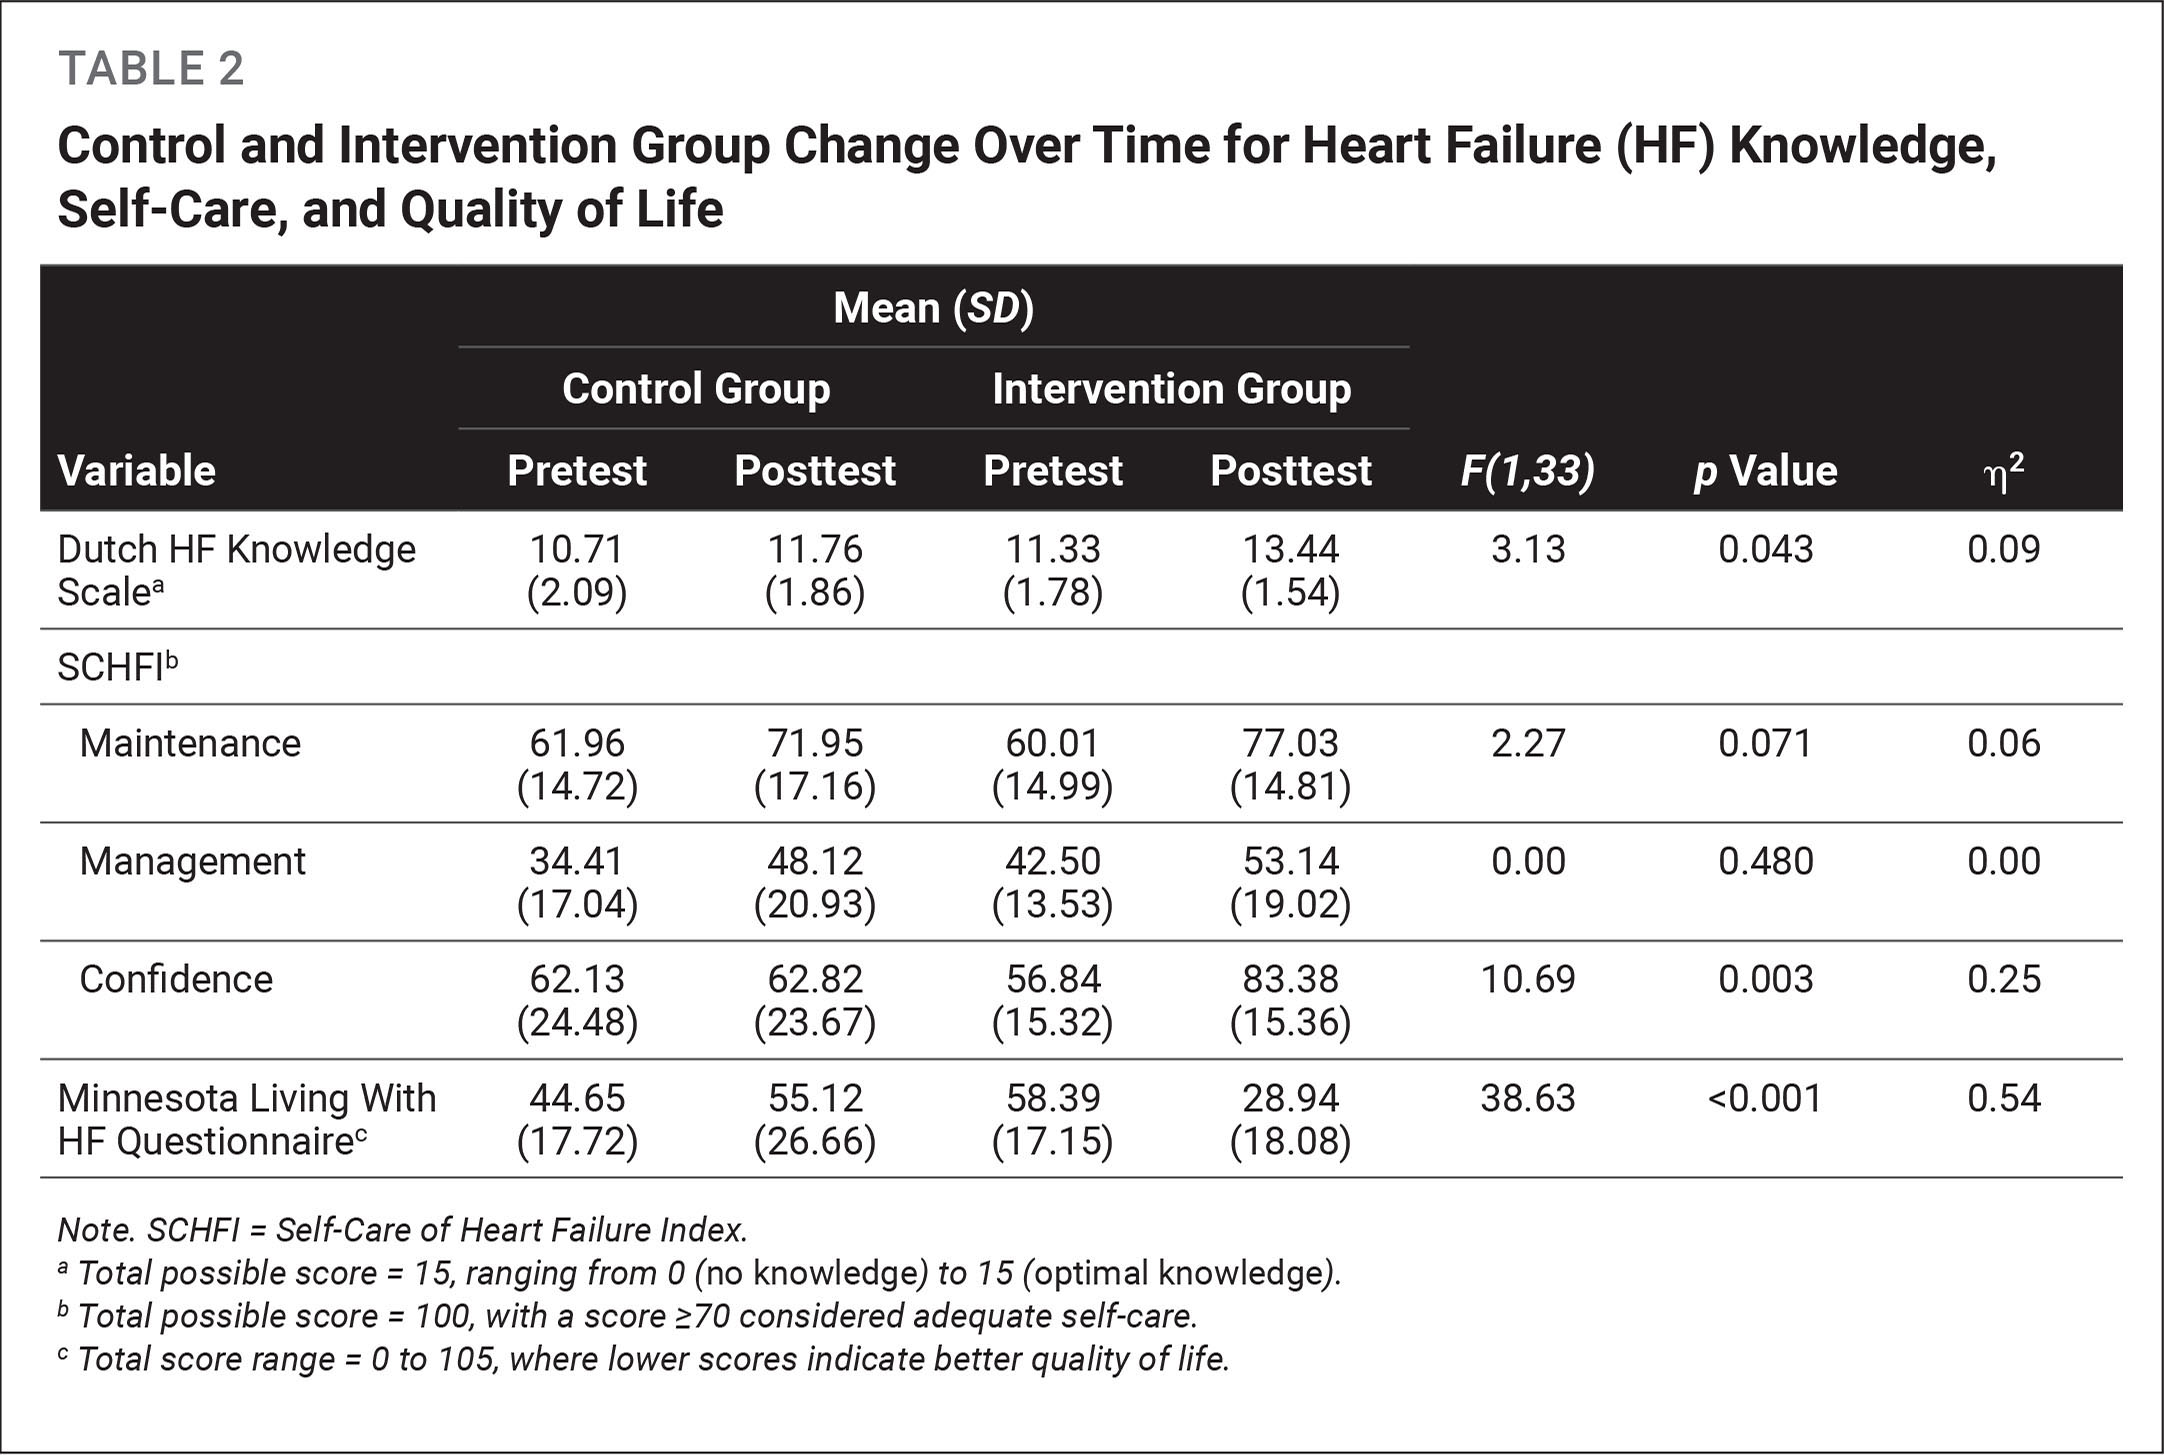 Control and Intervention Group Change Over Time for Heart Failure (HF) Knowledge, Self-Care, and Quality of Life